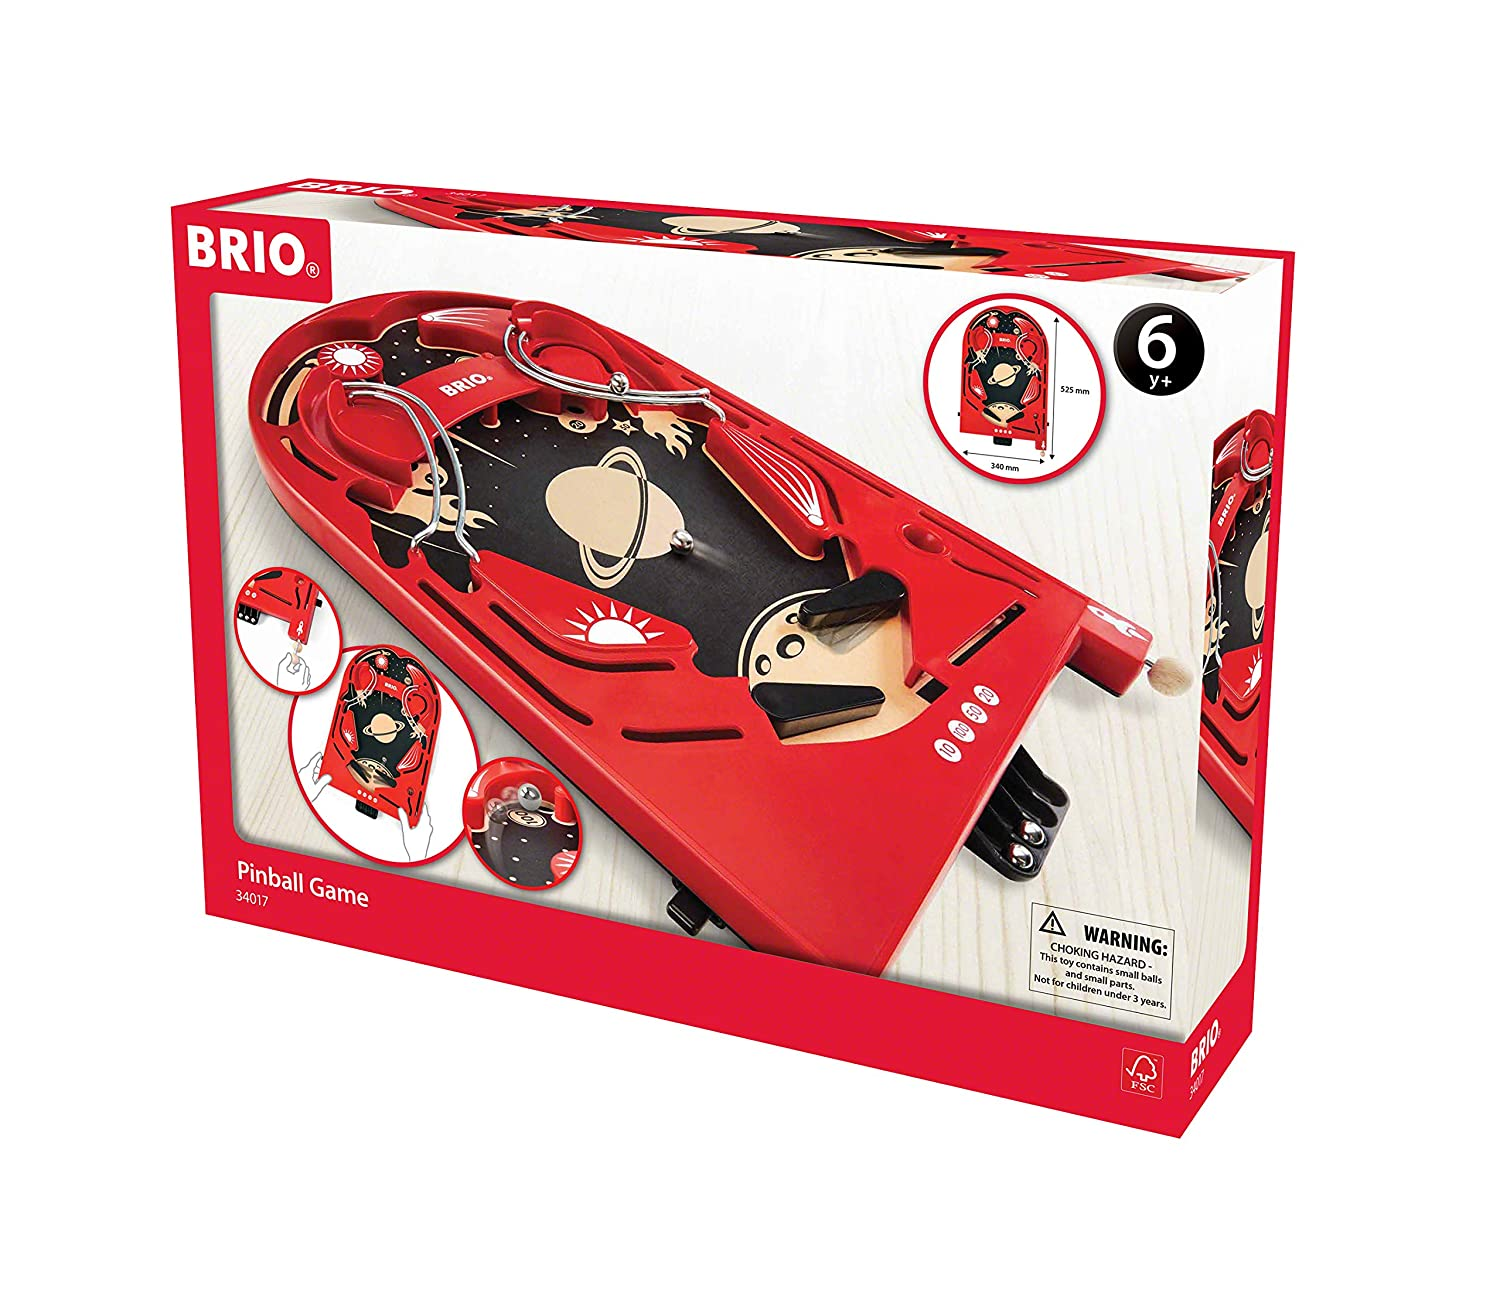 Sensational Brio 34017 Pinball Game A Classic Vintage Arcade Style Tabletop Game For Kids And Adults Ages 6 And Up Interior Design Ideas Gentotryabchikinfo